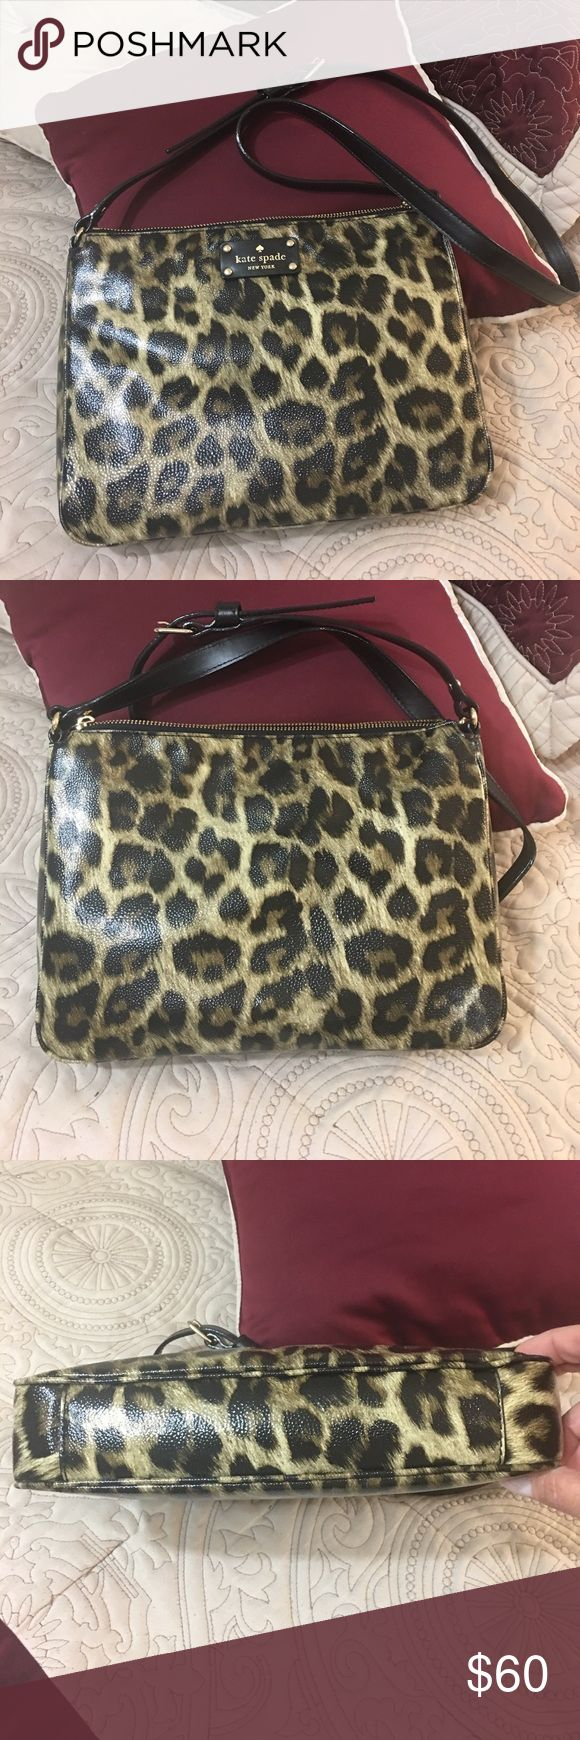 Kate Spade Leopard print bag This awesome bag is in excellent condition. I may have carried it twice. It is clean inside and out. The cross body strap is adjustable.  Scoop it up - it's a beauty! kate spade Bags Crossbody Bags